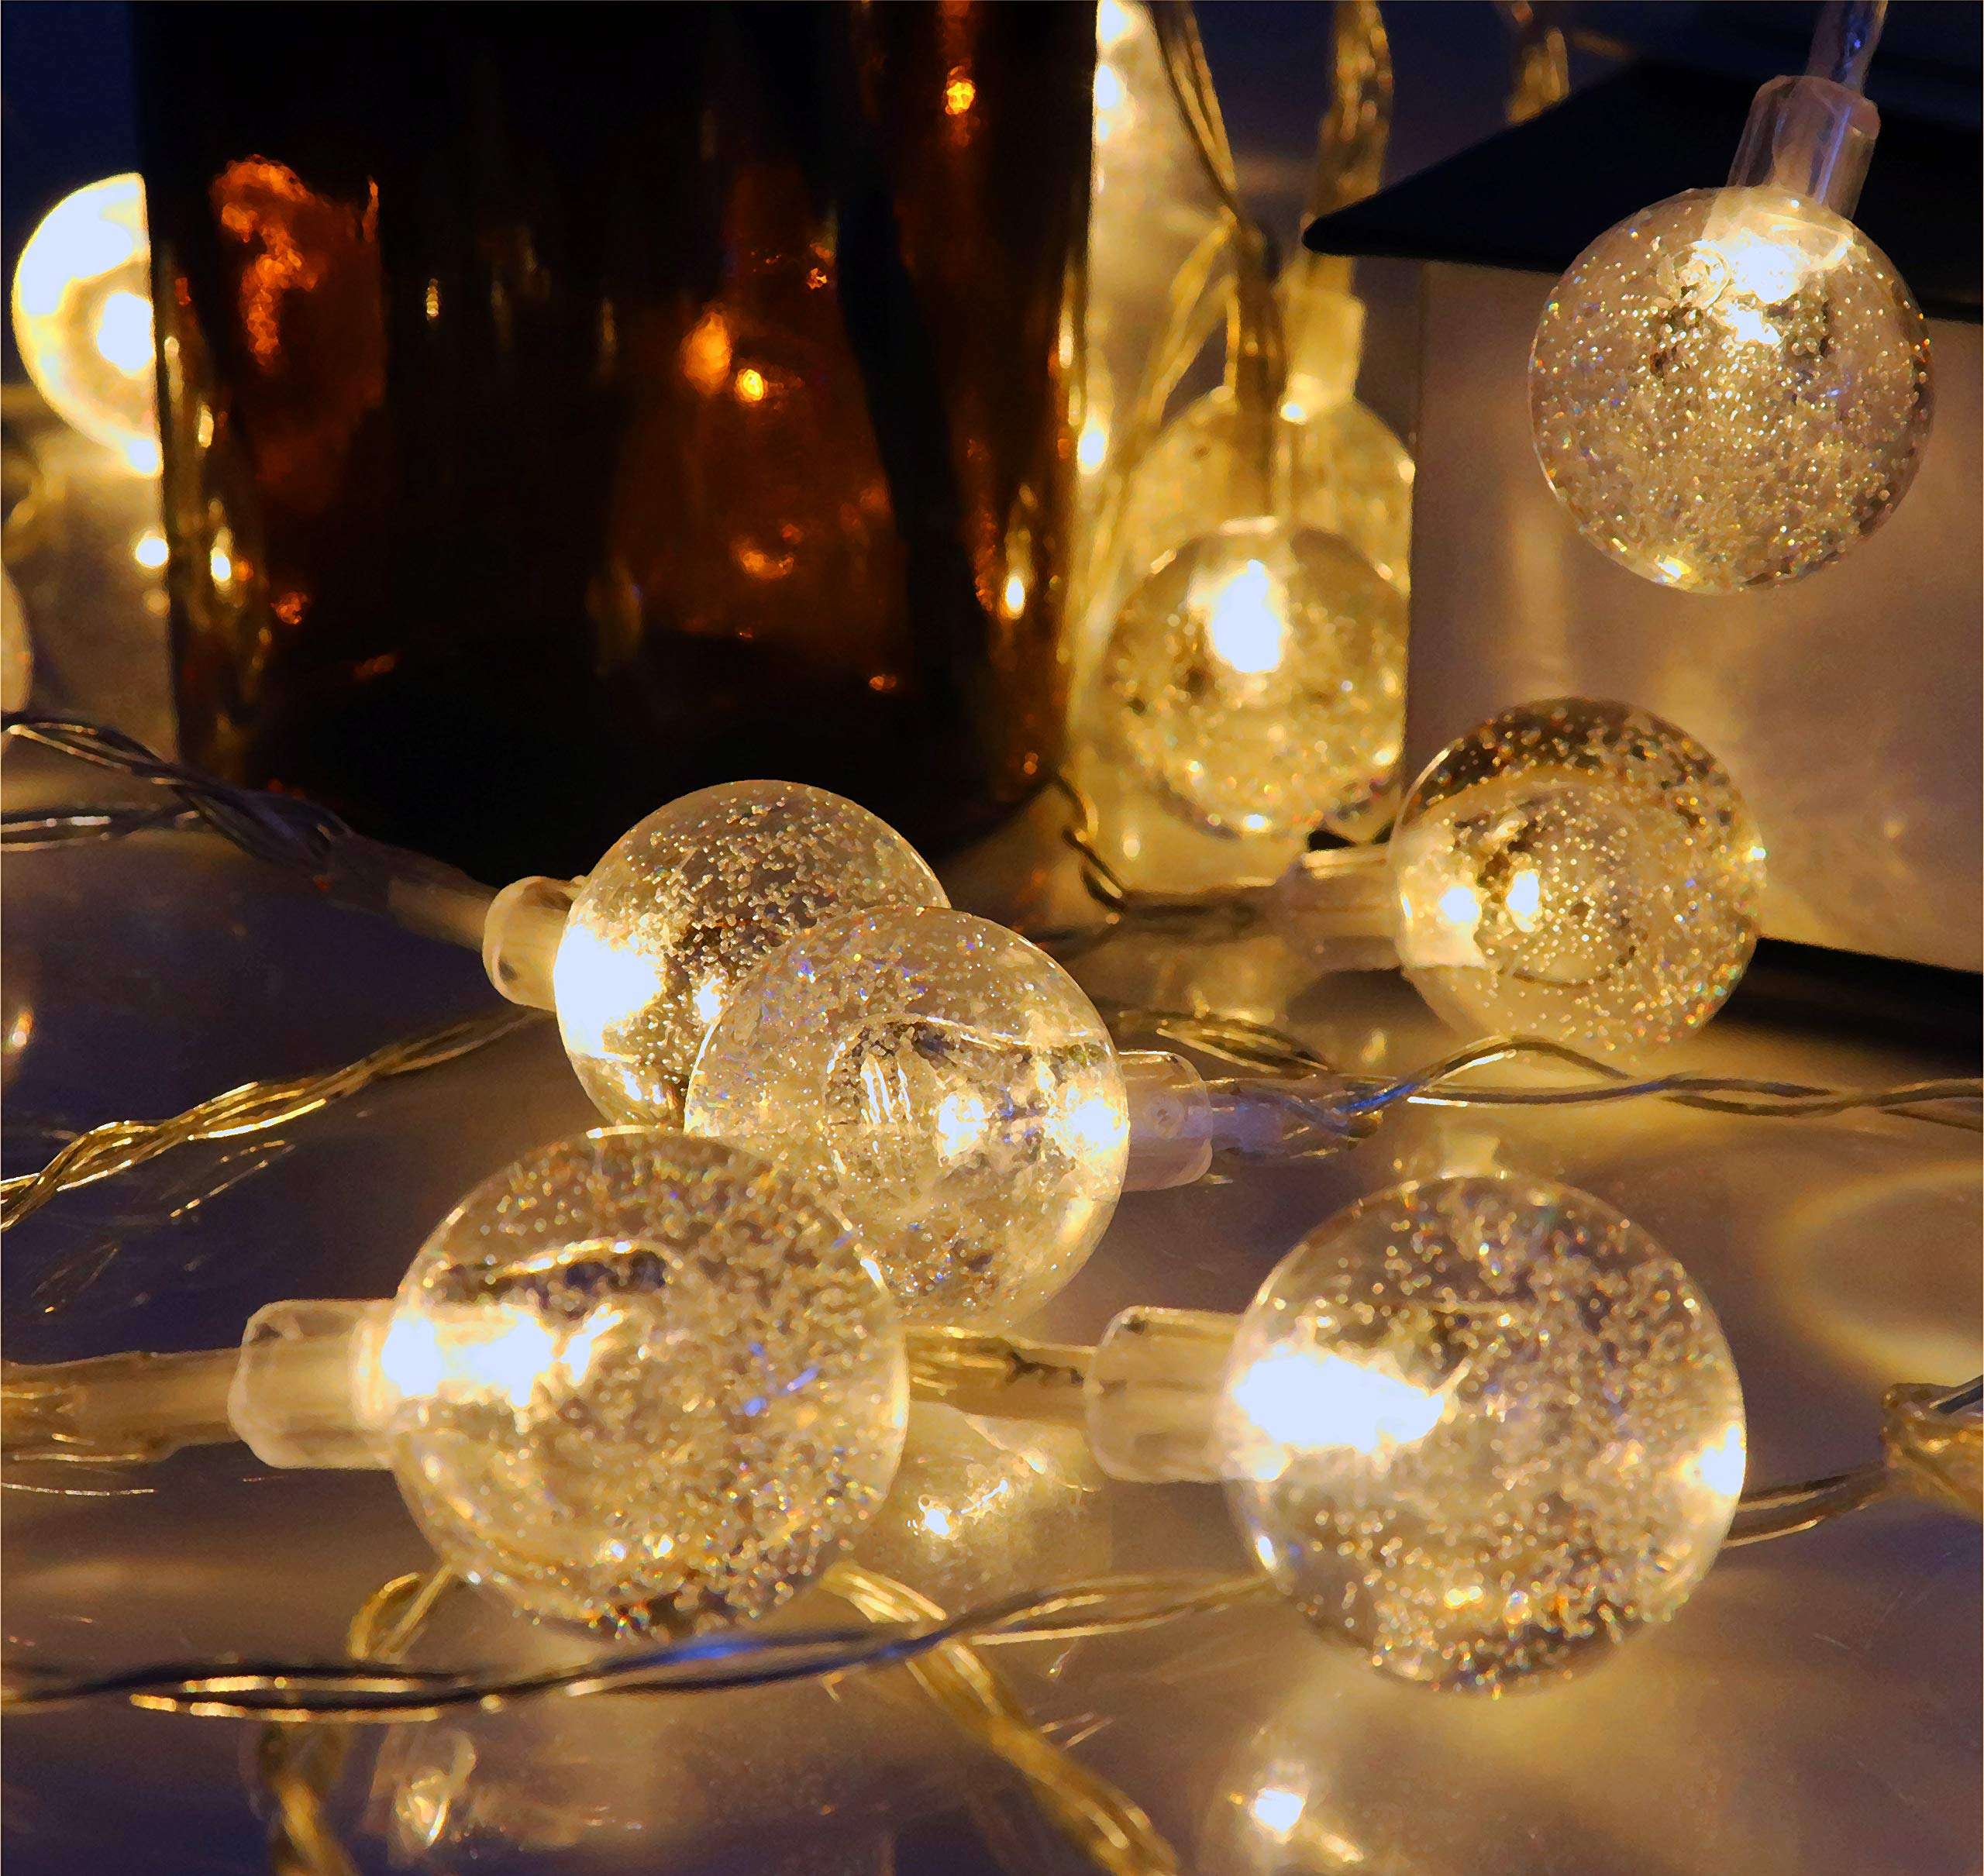 Bubble String Lights - 23ft 40 LED Crystal Ball Fairy Lights for Christmas Trees, Home, Patio, Lawn, Garden, Party and Holiday, Indoor Outdoor Decorations Warm White